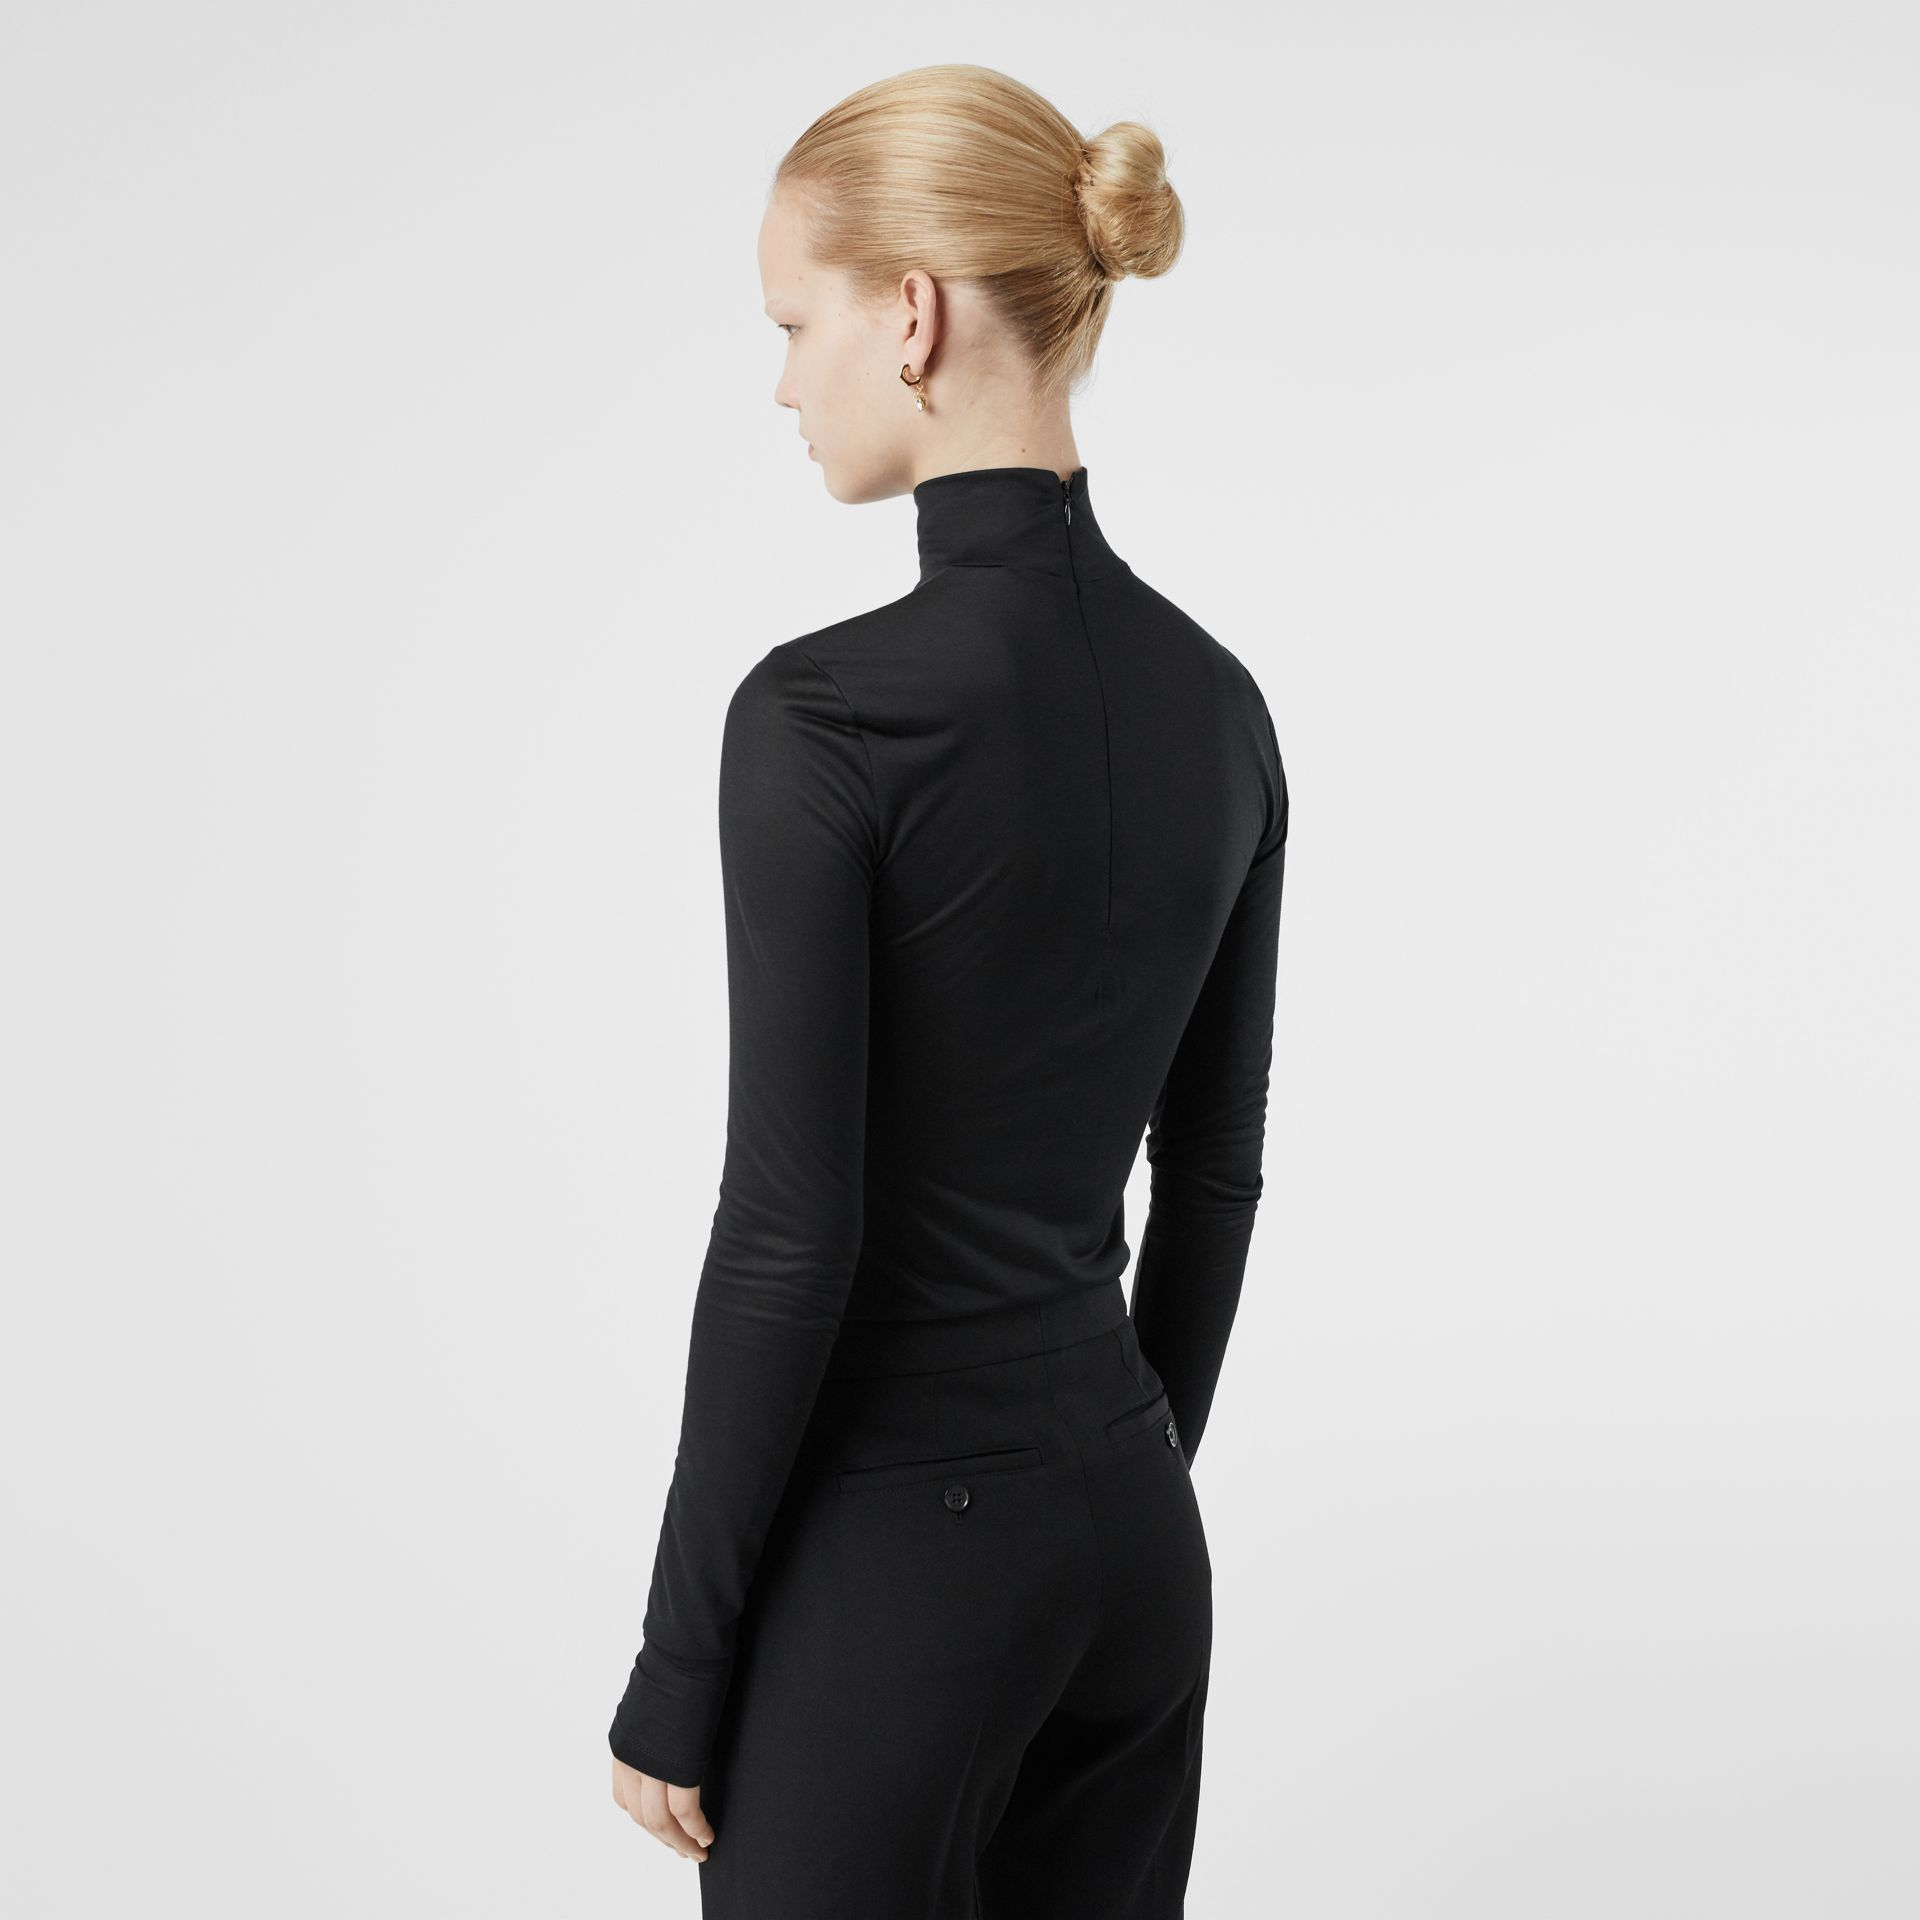 Silk Jersey Turtleneck Top in Black - Women | Burberry Hong Kong S.A.R - gallery image 2